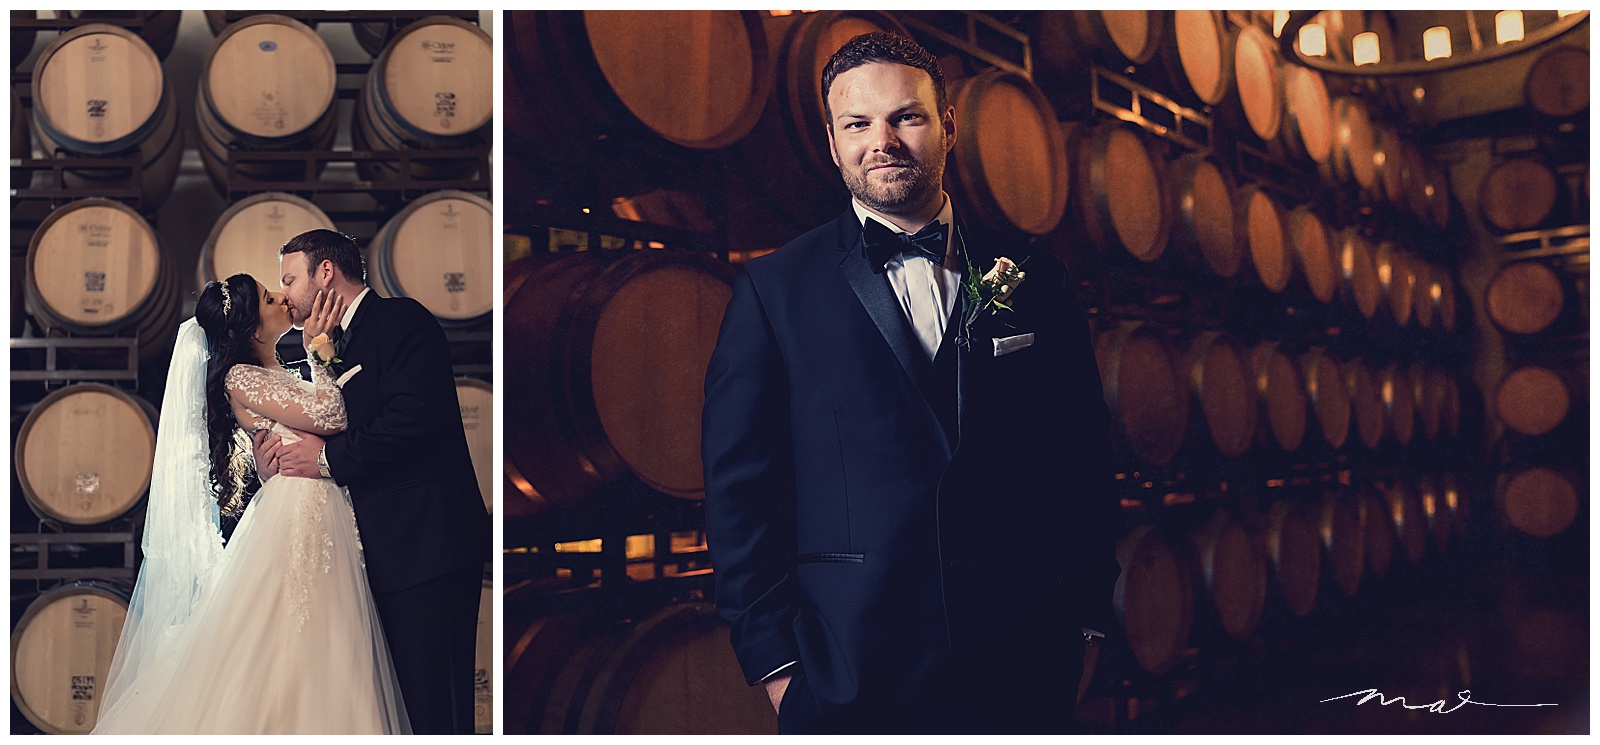 Callaway Wedding in Vineyard in Temecula, Michael Anthony Photography Blog: Los Angeles Wedding Photography